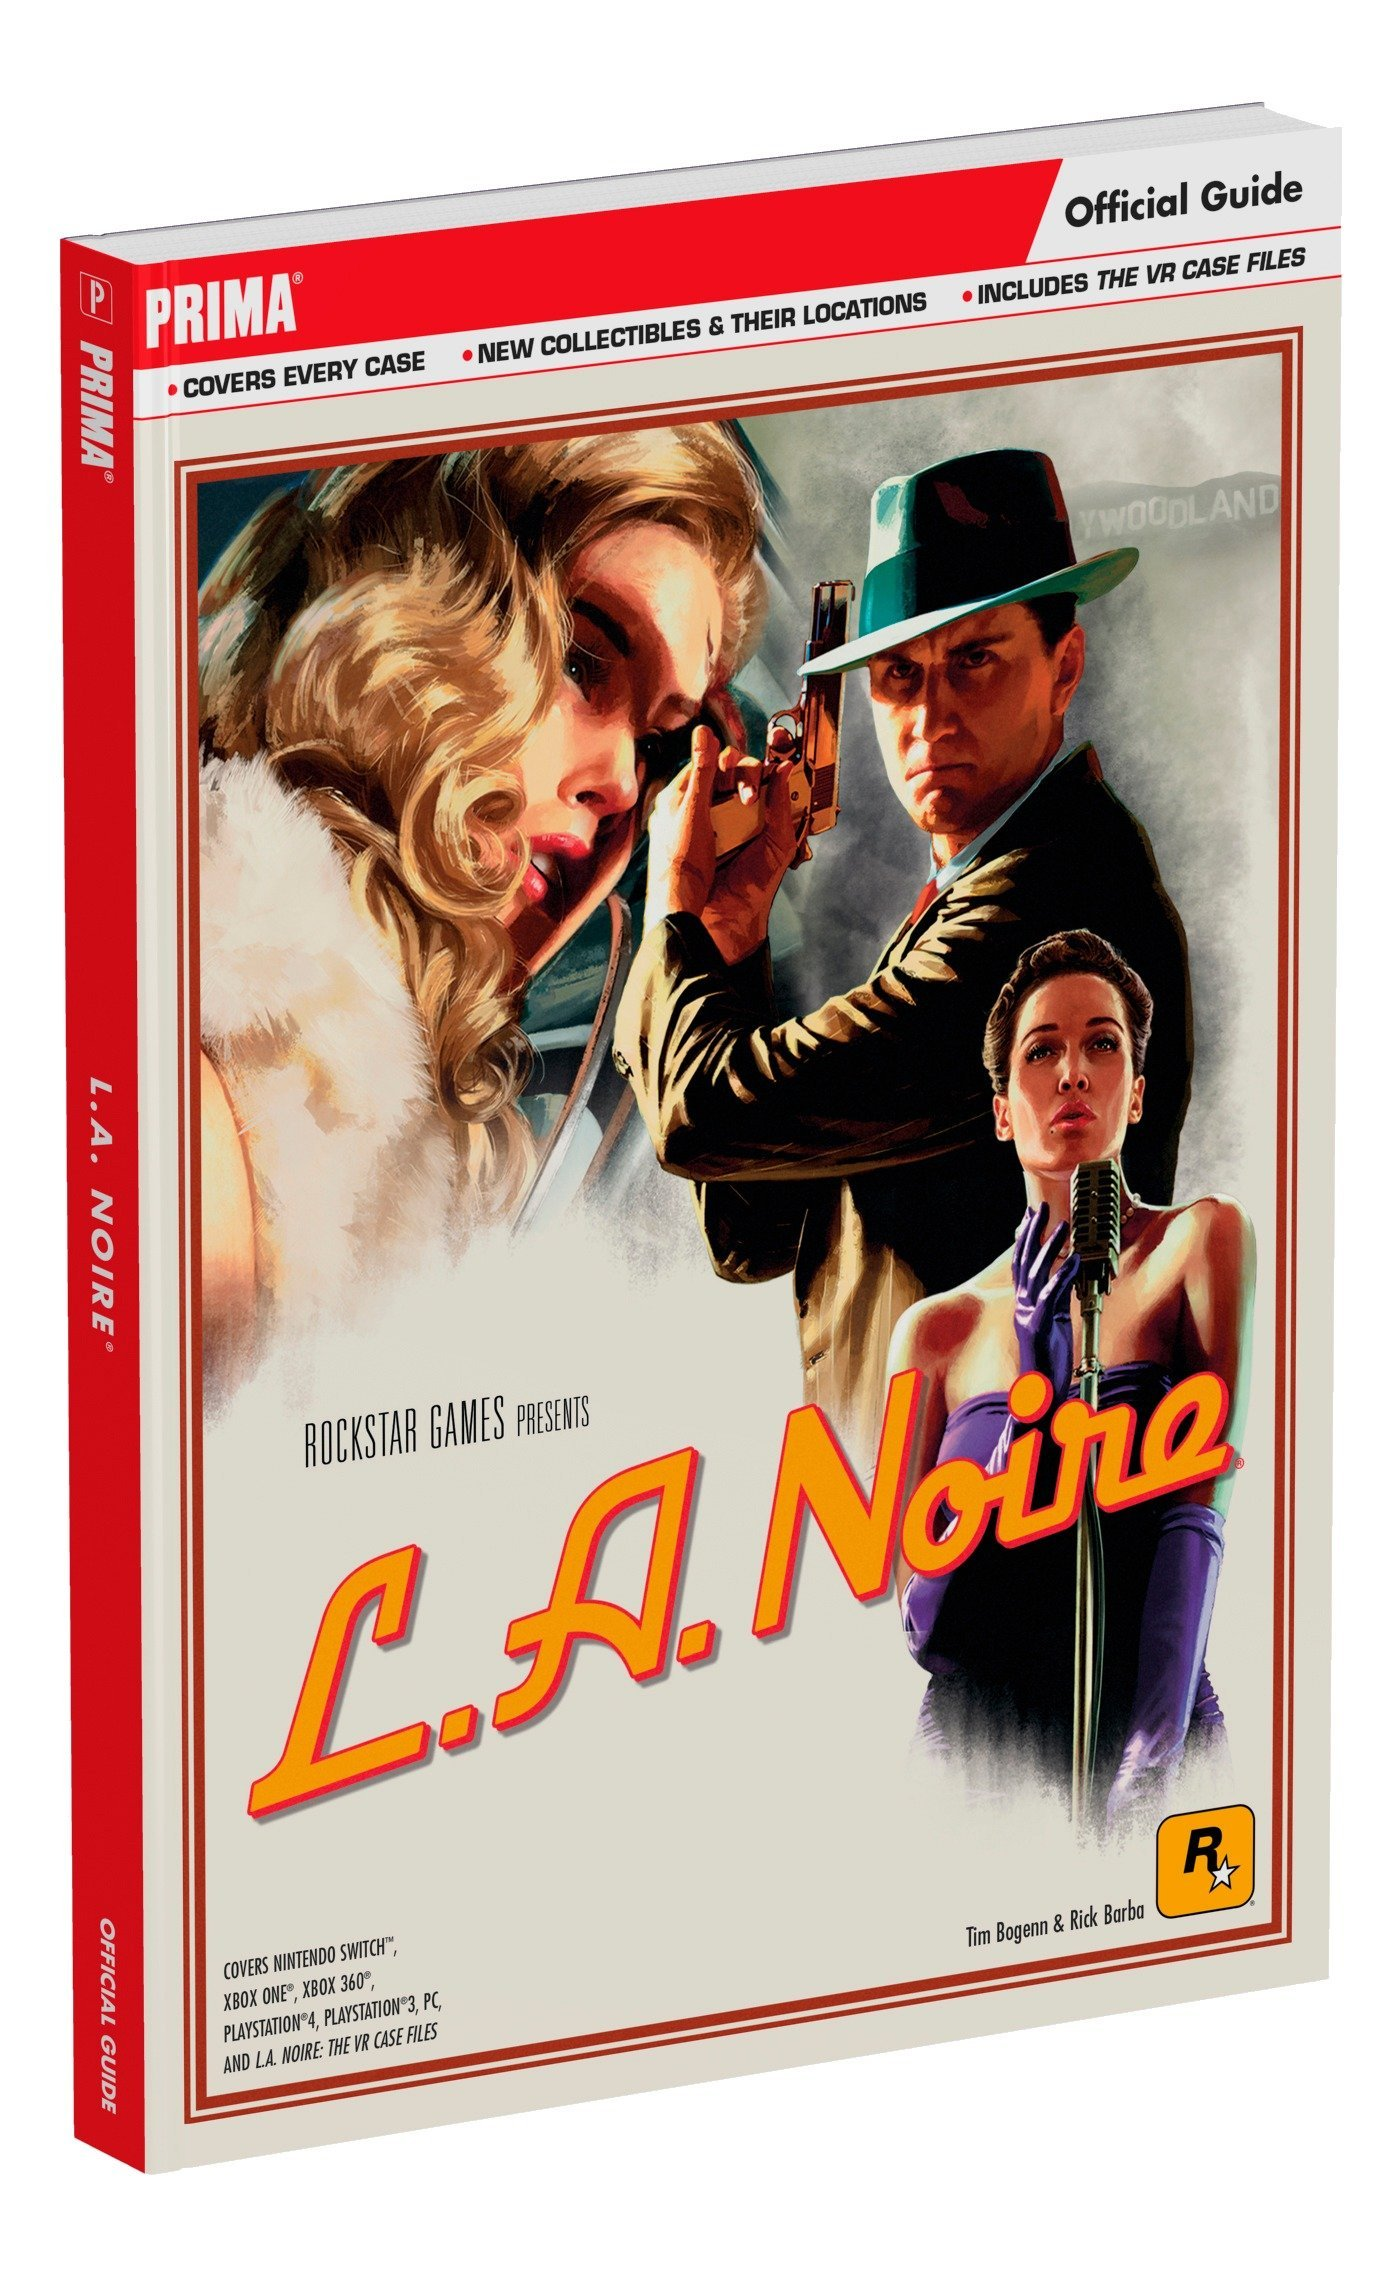 L.A. Noire: Prima Official Guide: Prima Games: 9780744018905: Amazon.com:  Books